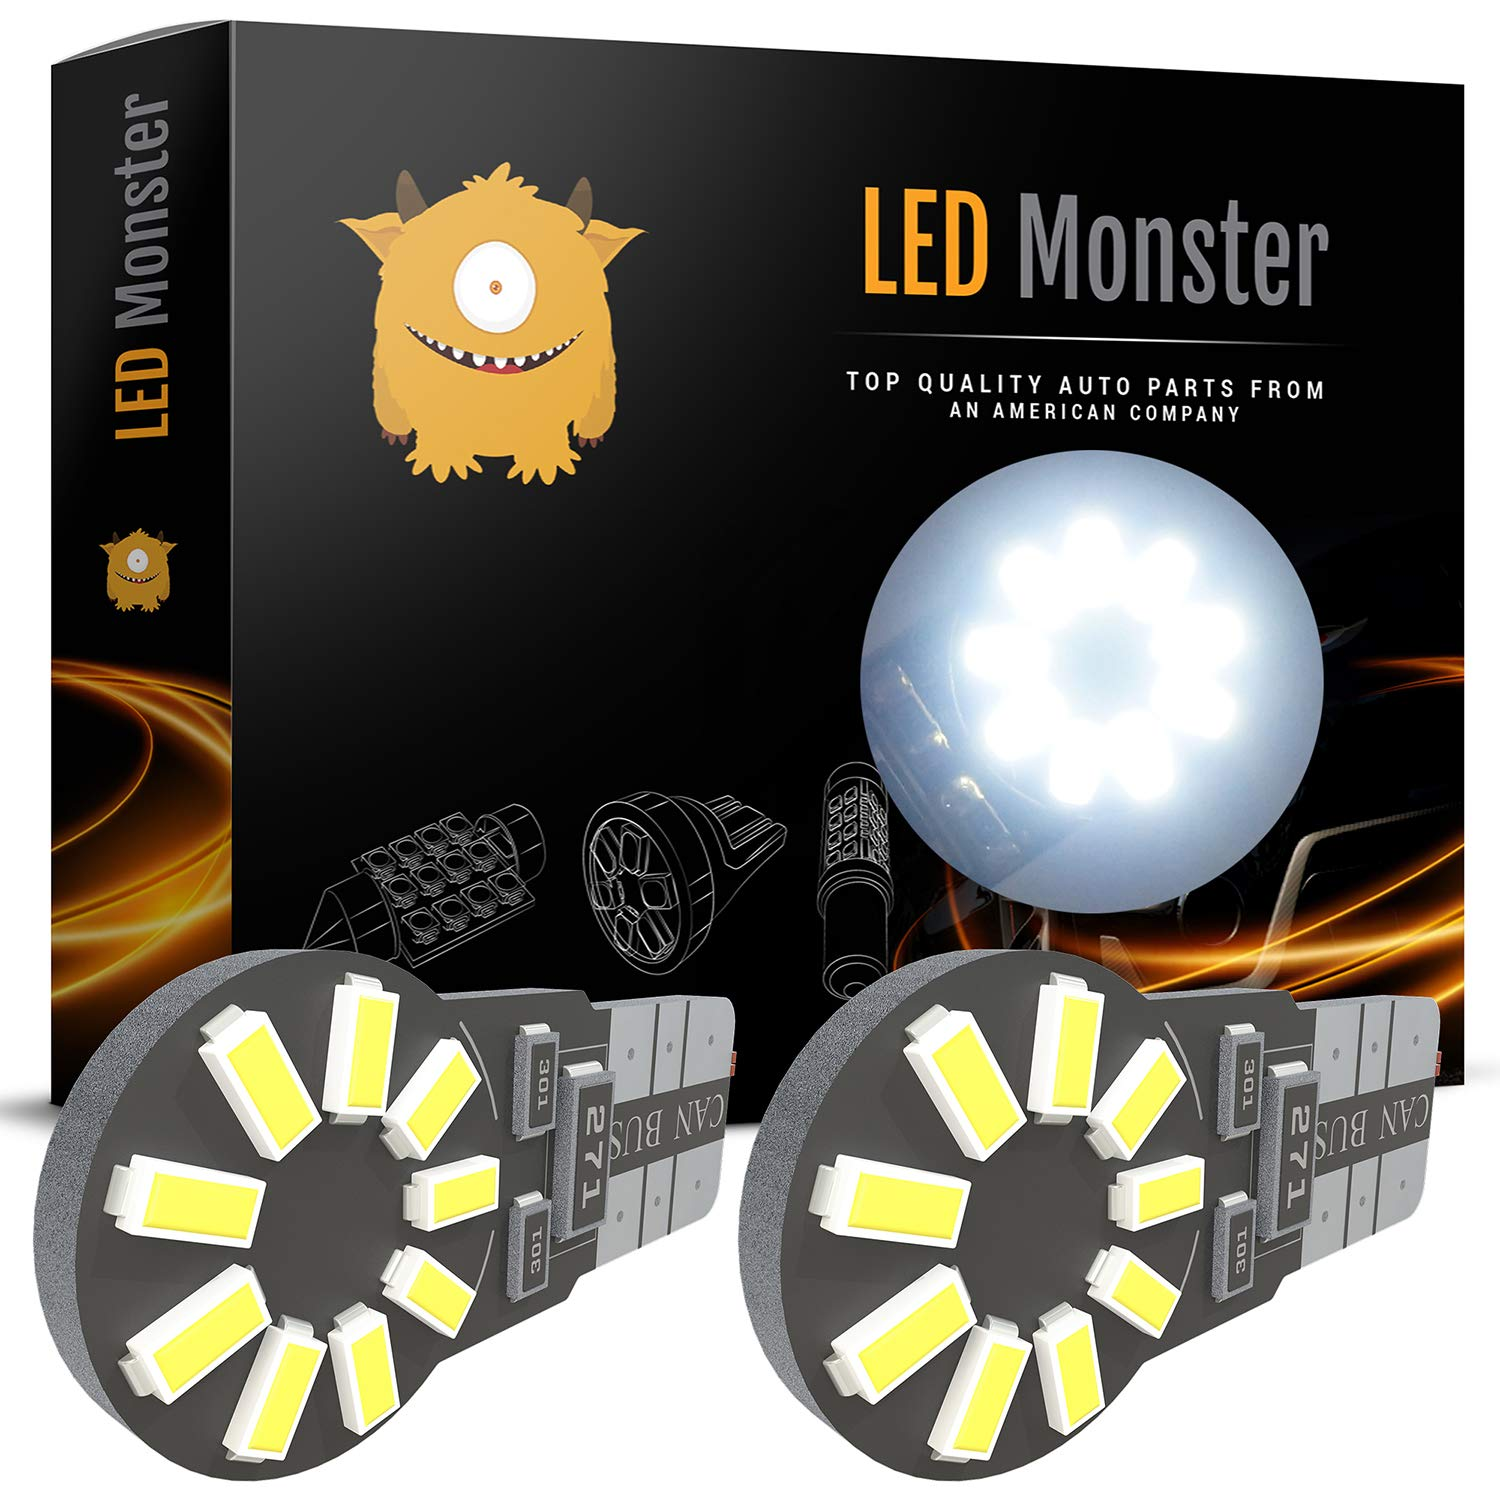 Luces Para 6000k Bulbs 12 Plate Monster Dome Bulb Lightamp; Position Volt Automotive Best License Led T10 Autos White For 194 f6y7bg